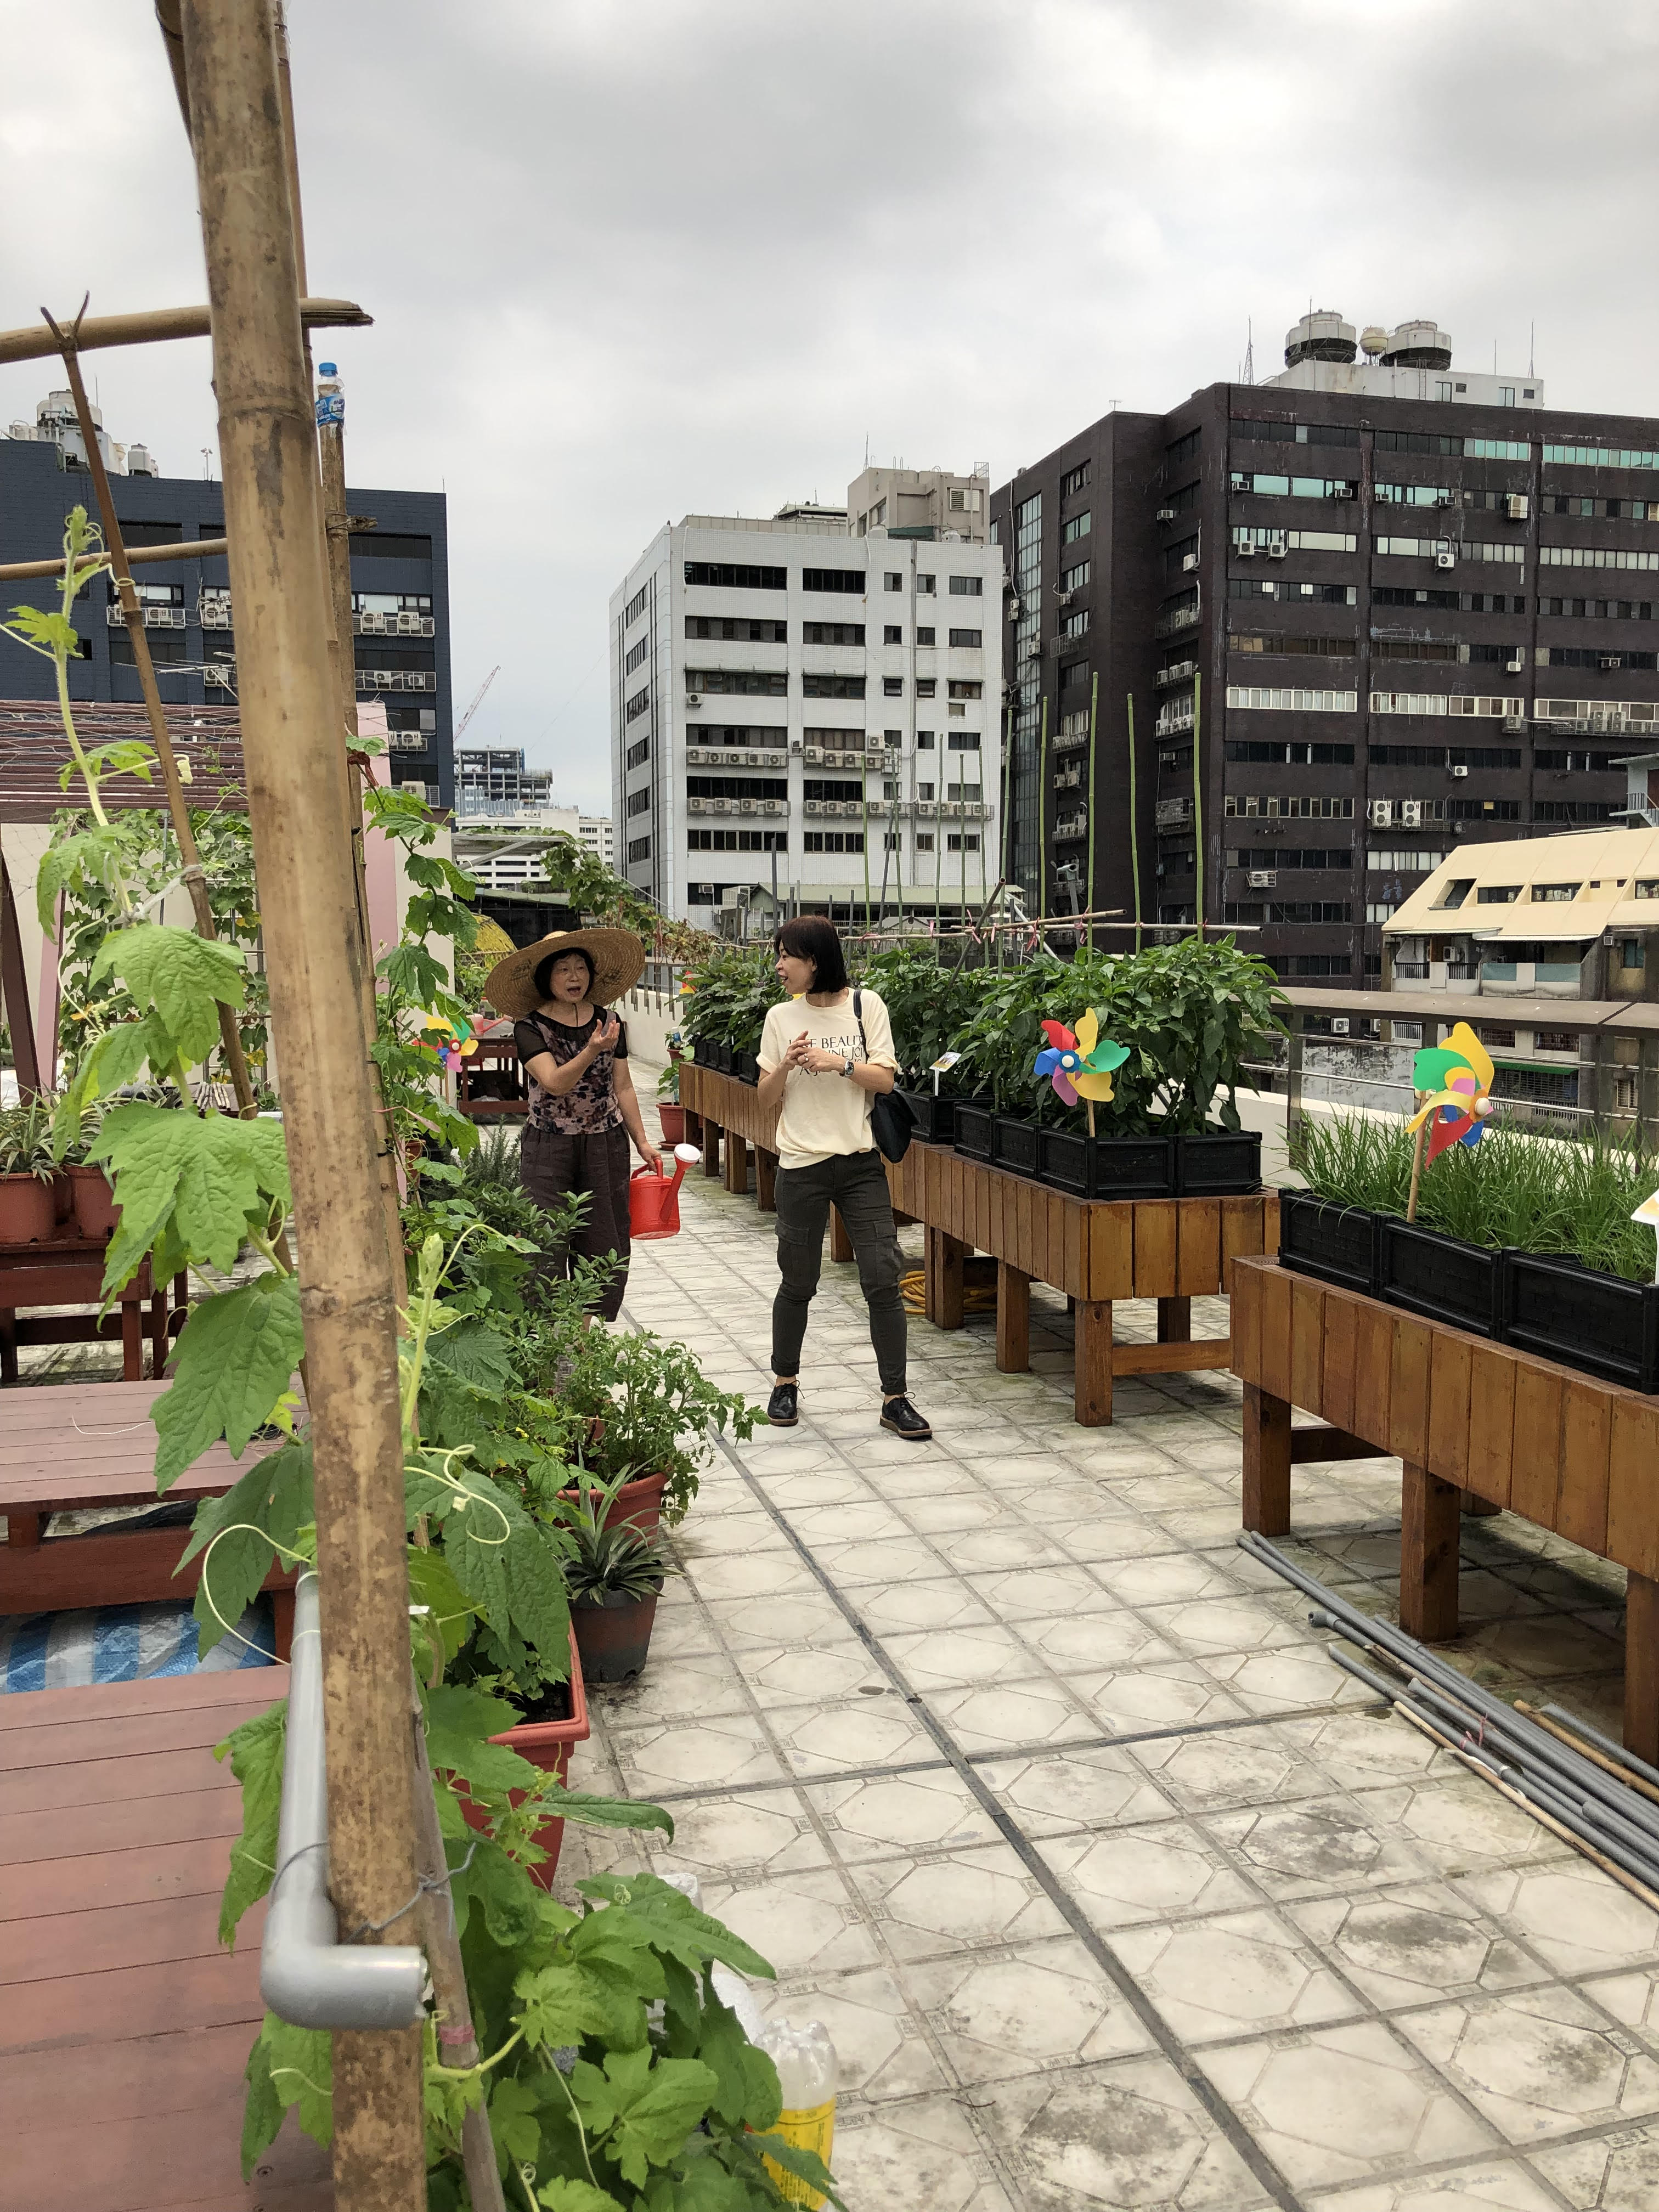 Roof garden at the New Centre for Care in Taiwan